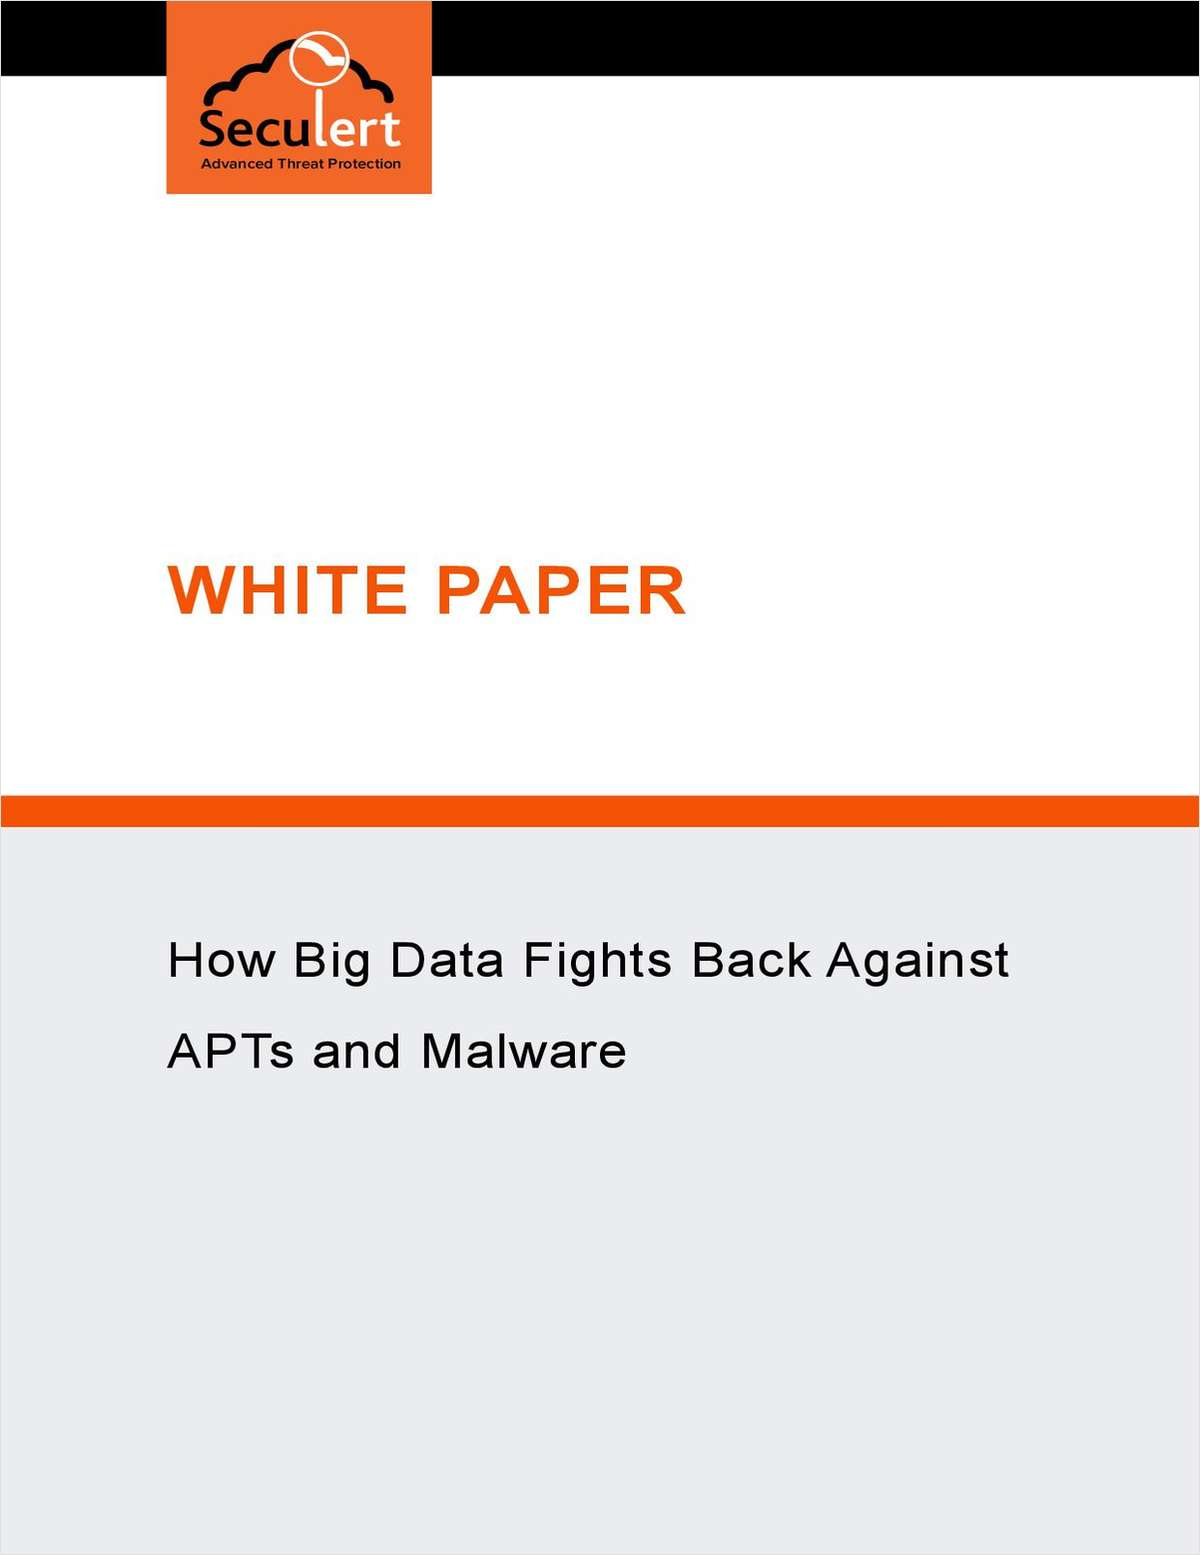 How Big Data Fights Back Against APTs and Malware